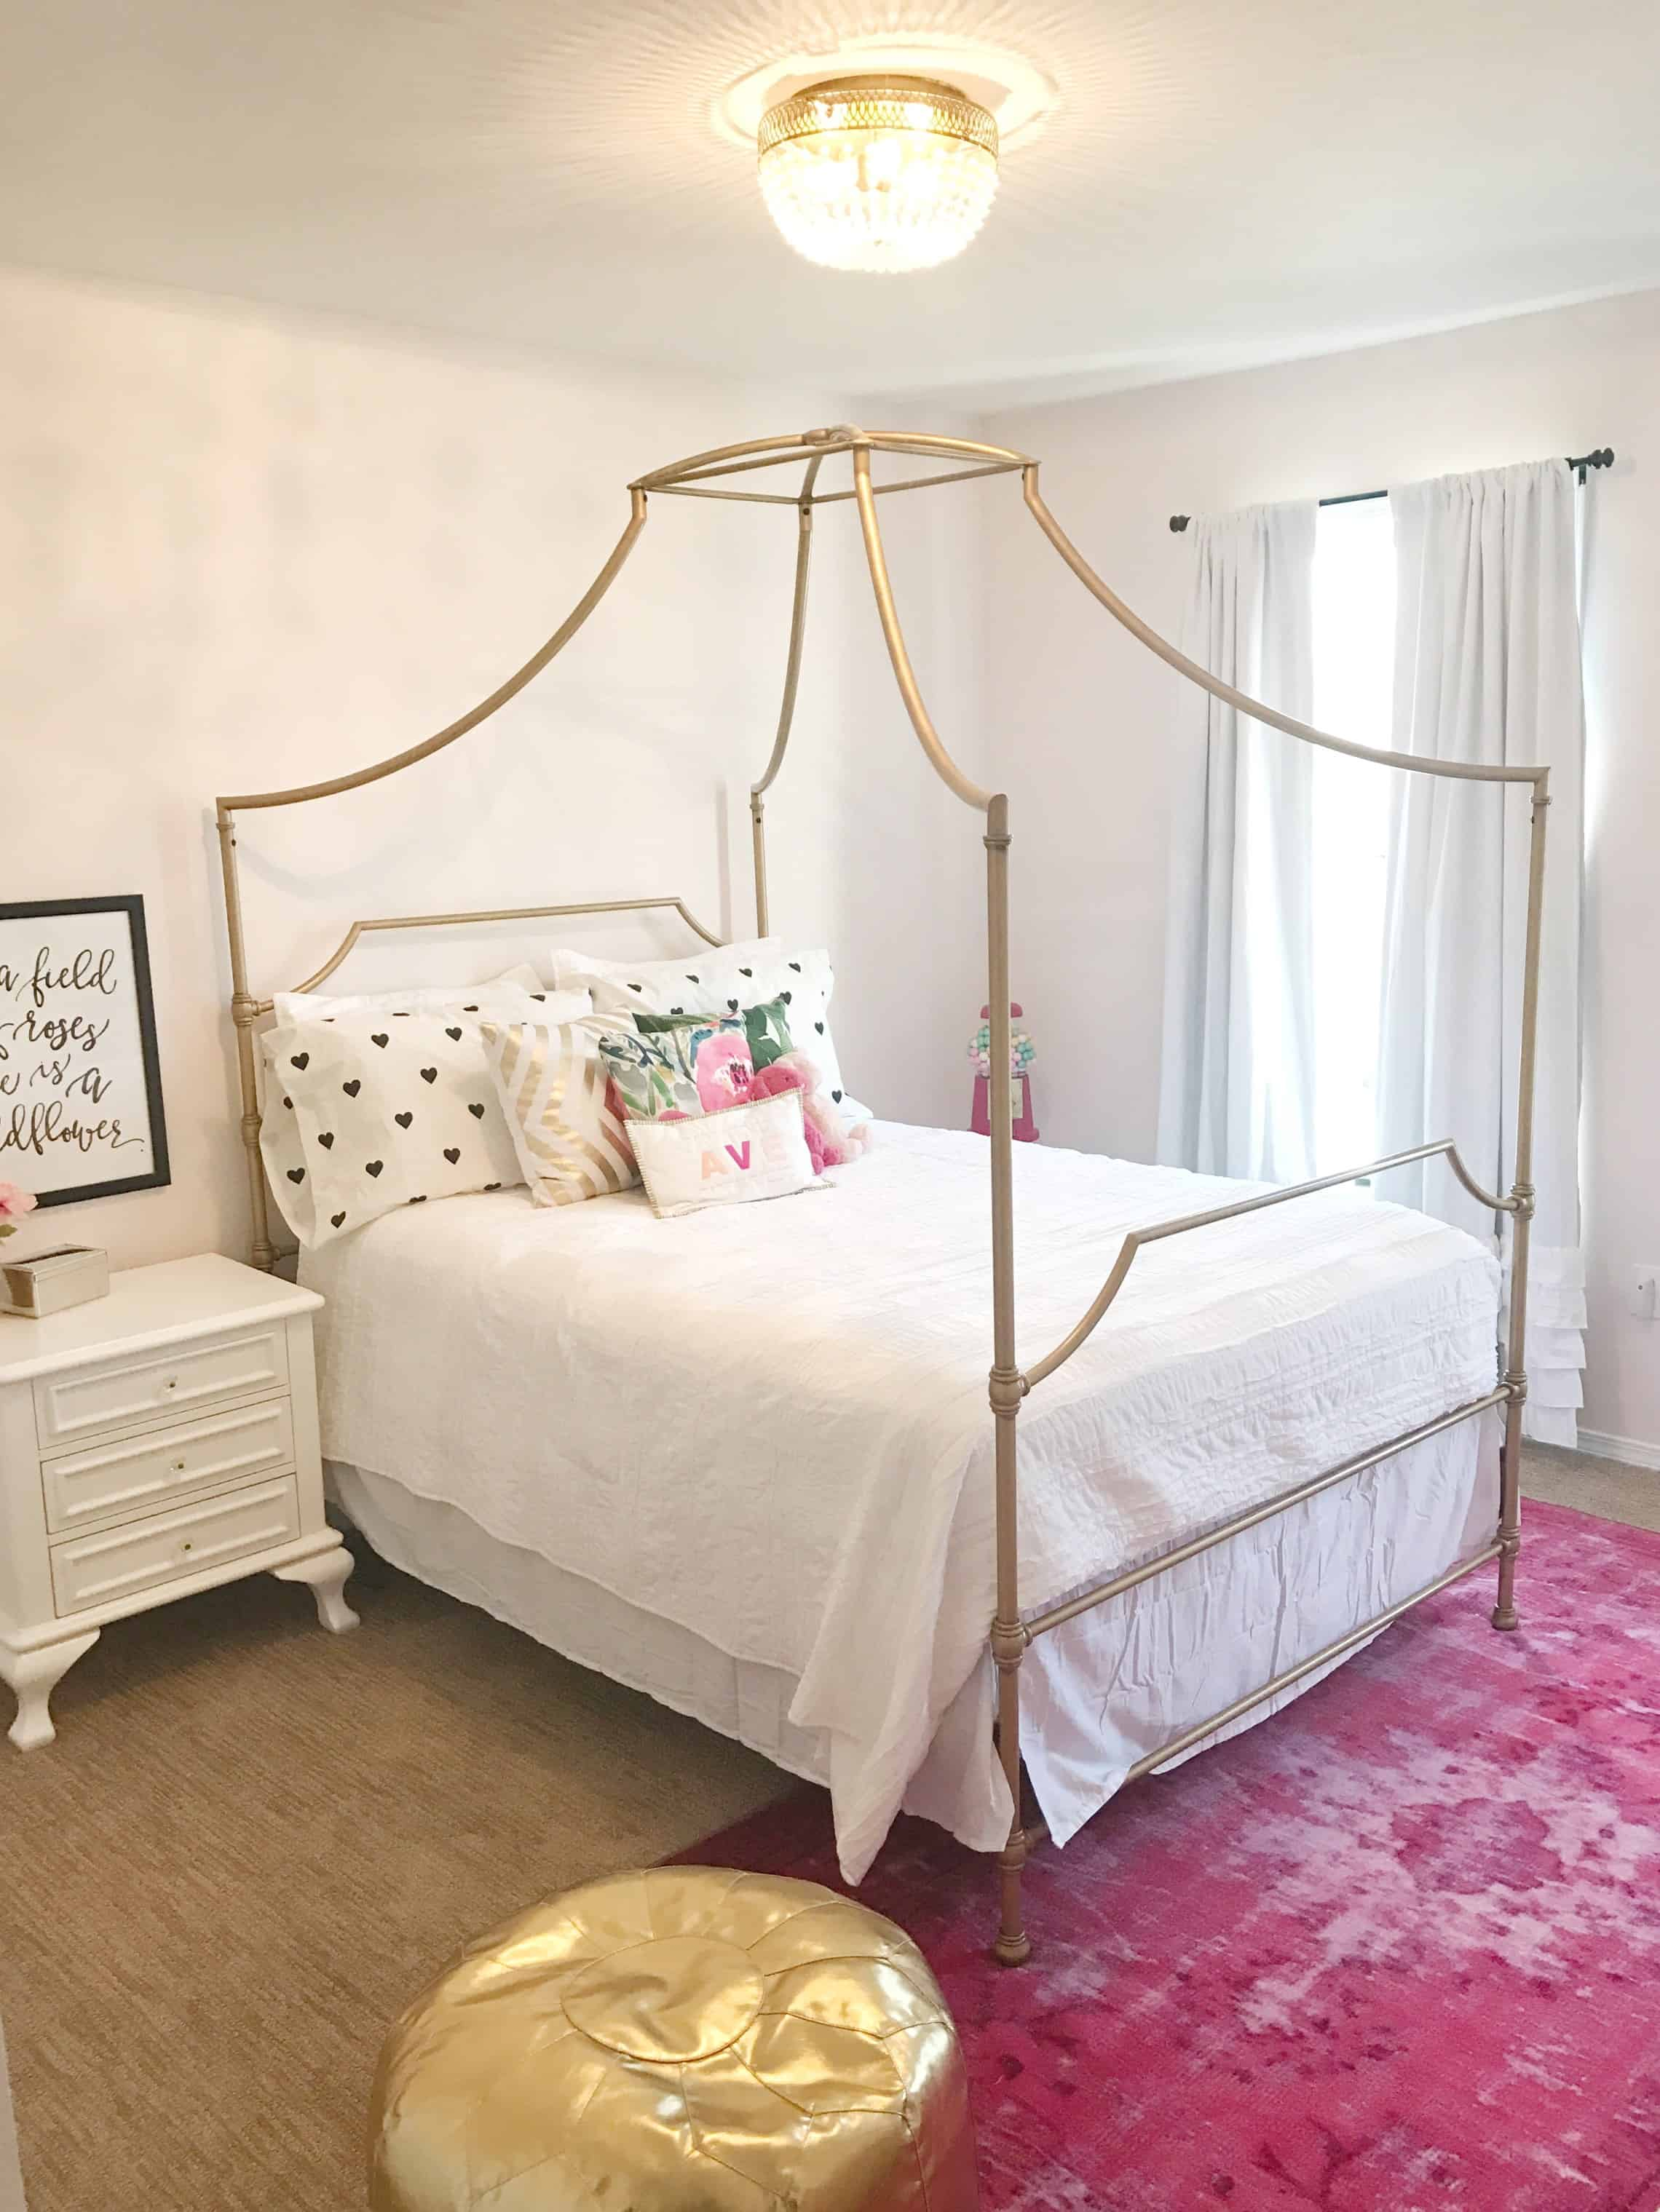 PB teen mason bed styled with white bedding and pink rug